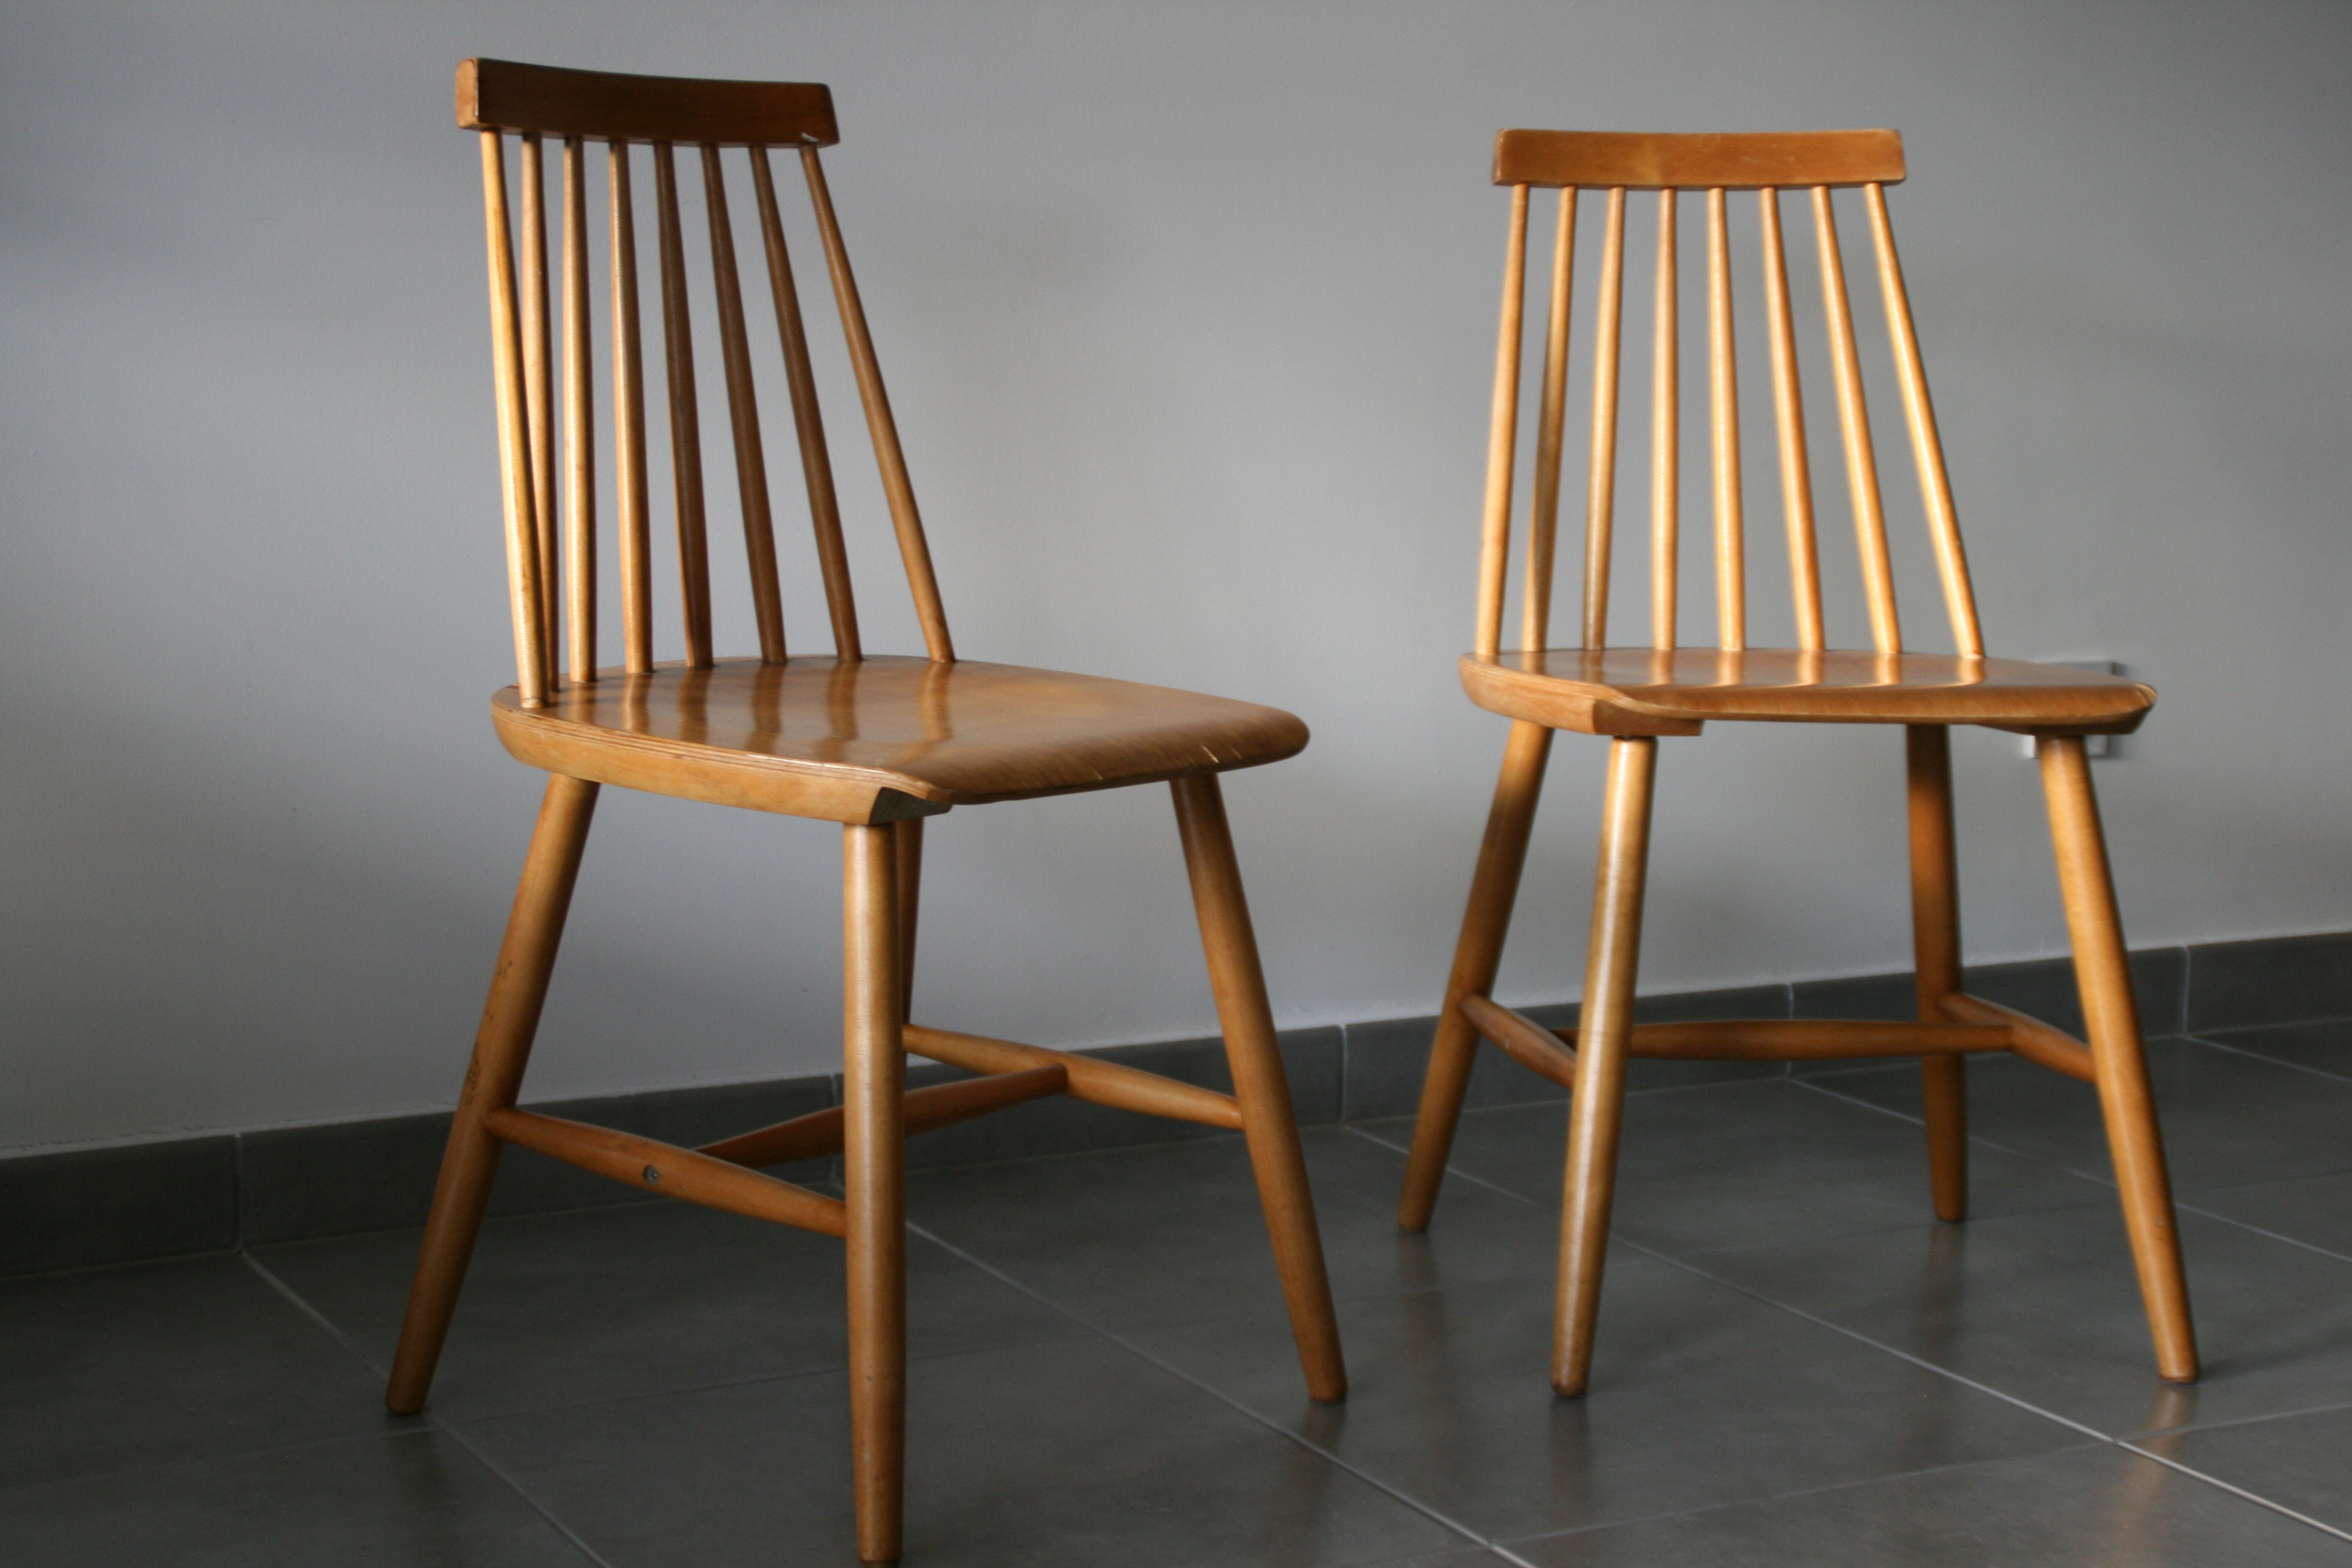 Pair Of Scandinavian Chairs In Varnished Wood 1970s Design Market